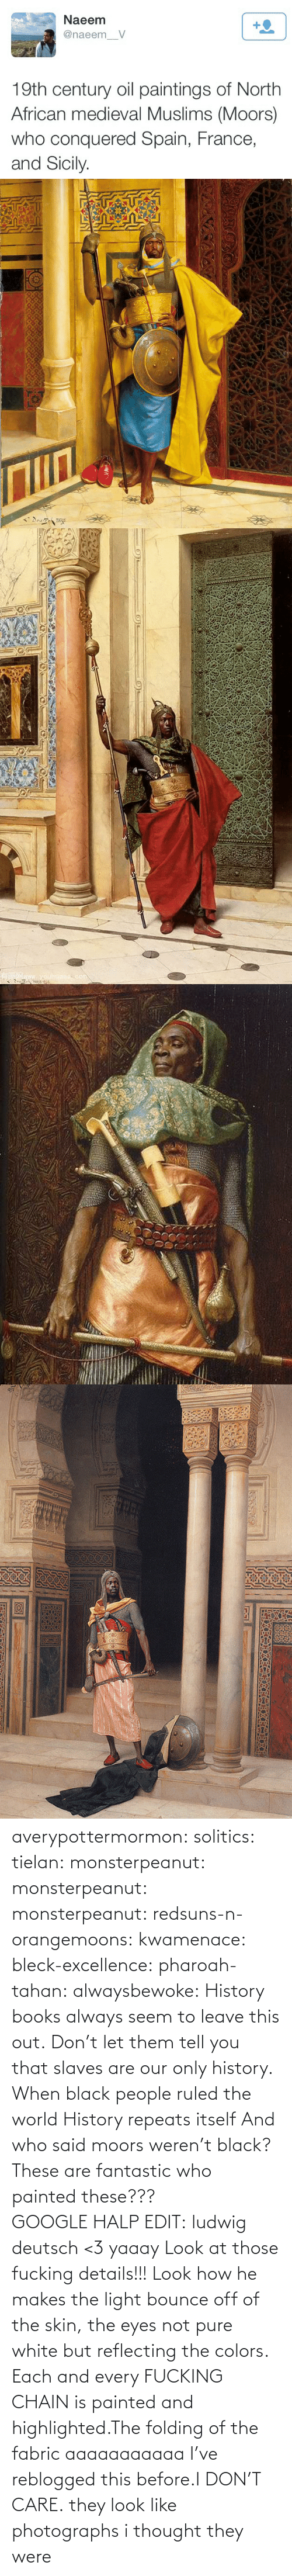 They Were: Naeem  +2  @naeem_V  19th century oil paintings of North  African medieval Muslims (Moors)  who conquered Spain, France,  and Sicily.   Nww.youhuaua com averypottermormon: solitics:  tielan:  monsterpeanut:  monsterpeanut:  monsterpeanut:  redsuns-n-orangemoons:  kwamenace:  bleck-excellence:  pharoah-tahan:  alwaysbewoke:  History books always seem to leave this out.  Don't let them tell you that slaves are our only history.  When black people ruled the world  History repeats itself  And who said moors weren't black?  These are fantastic who painted these???GOOGLE HALP EDIT: ludwig deutsch <3   yaaay   Look at those fucking details!!! Look how he makes the light bounce off of the skin, the eyes not pure white but reflecting the colors. Each and every FUCKING CHAIN is painted and highlighted.The folding of the fabric aaaaaaaaaaa  I've reblogged this before.I DON'T CARE.  they look like photographs   i thought they were